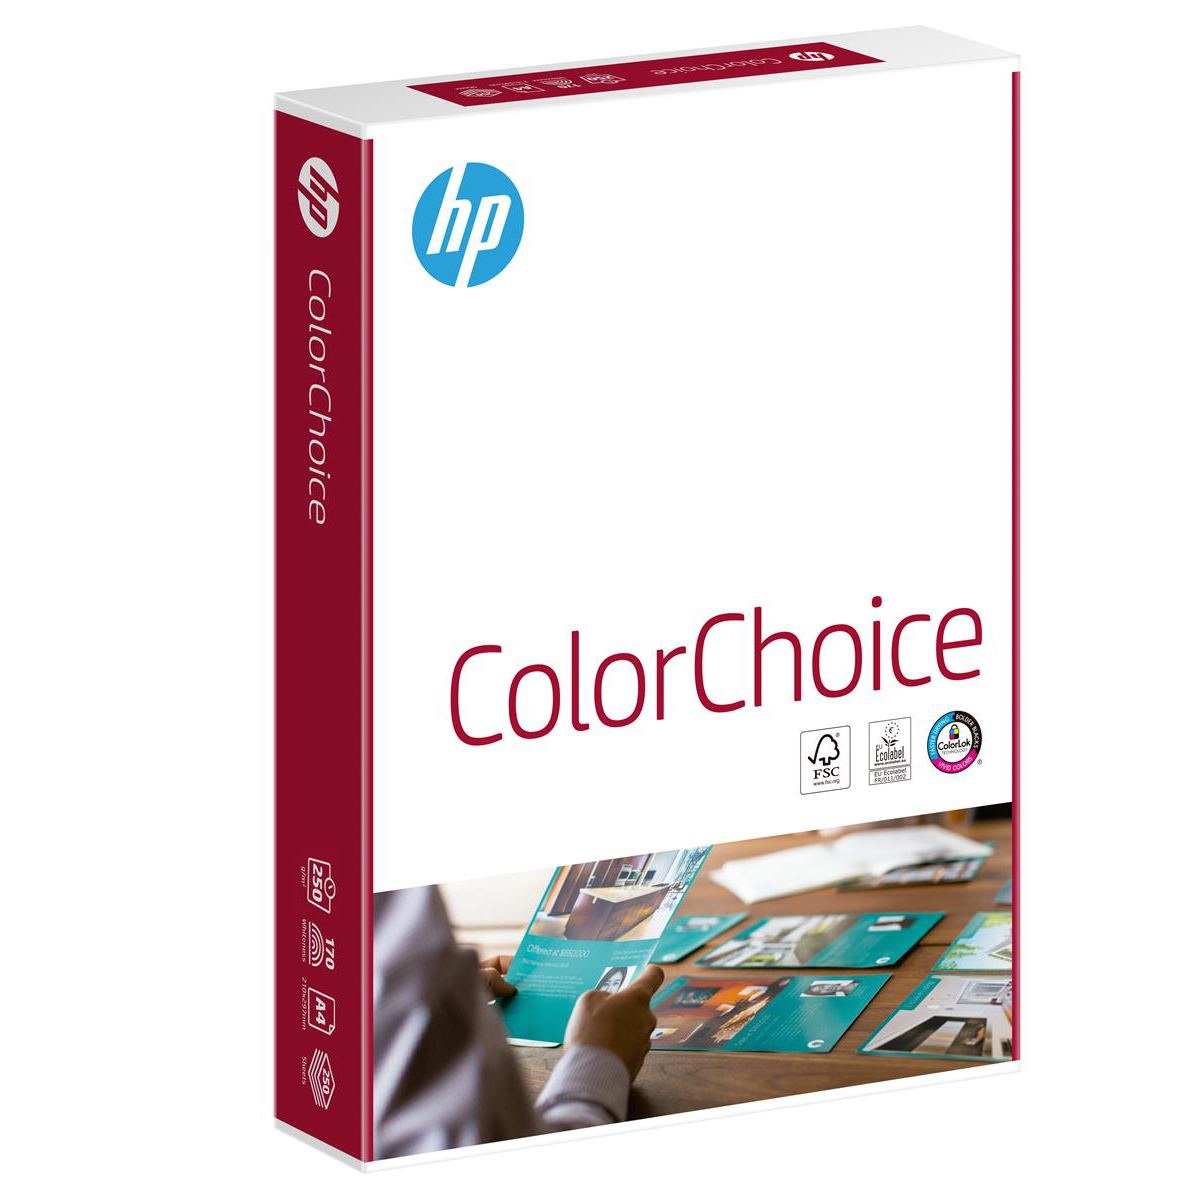 Hewlett Packard HP Color Choice Paper Smooth Colorlok 200gsm A4 White Ref CHP756 250 Sheets